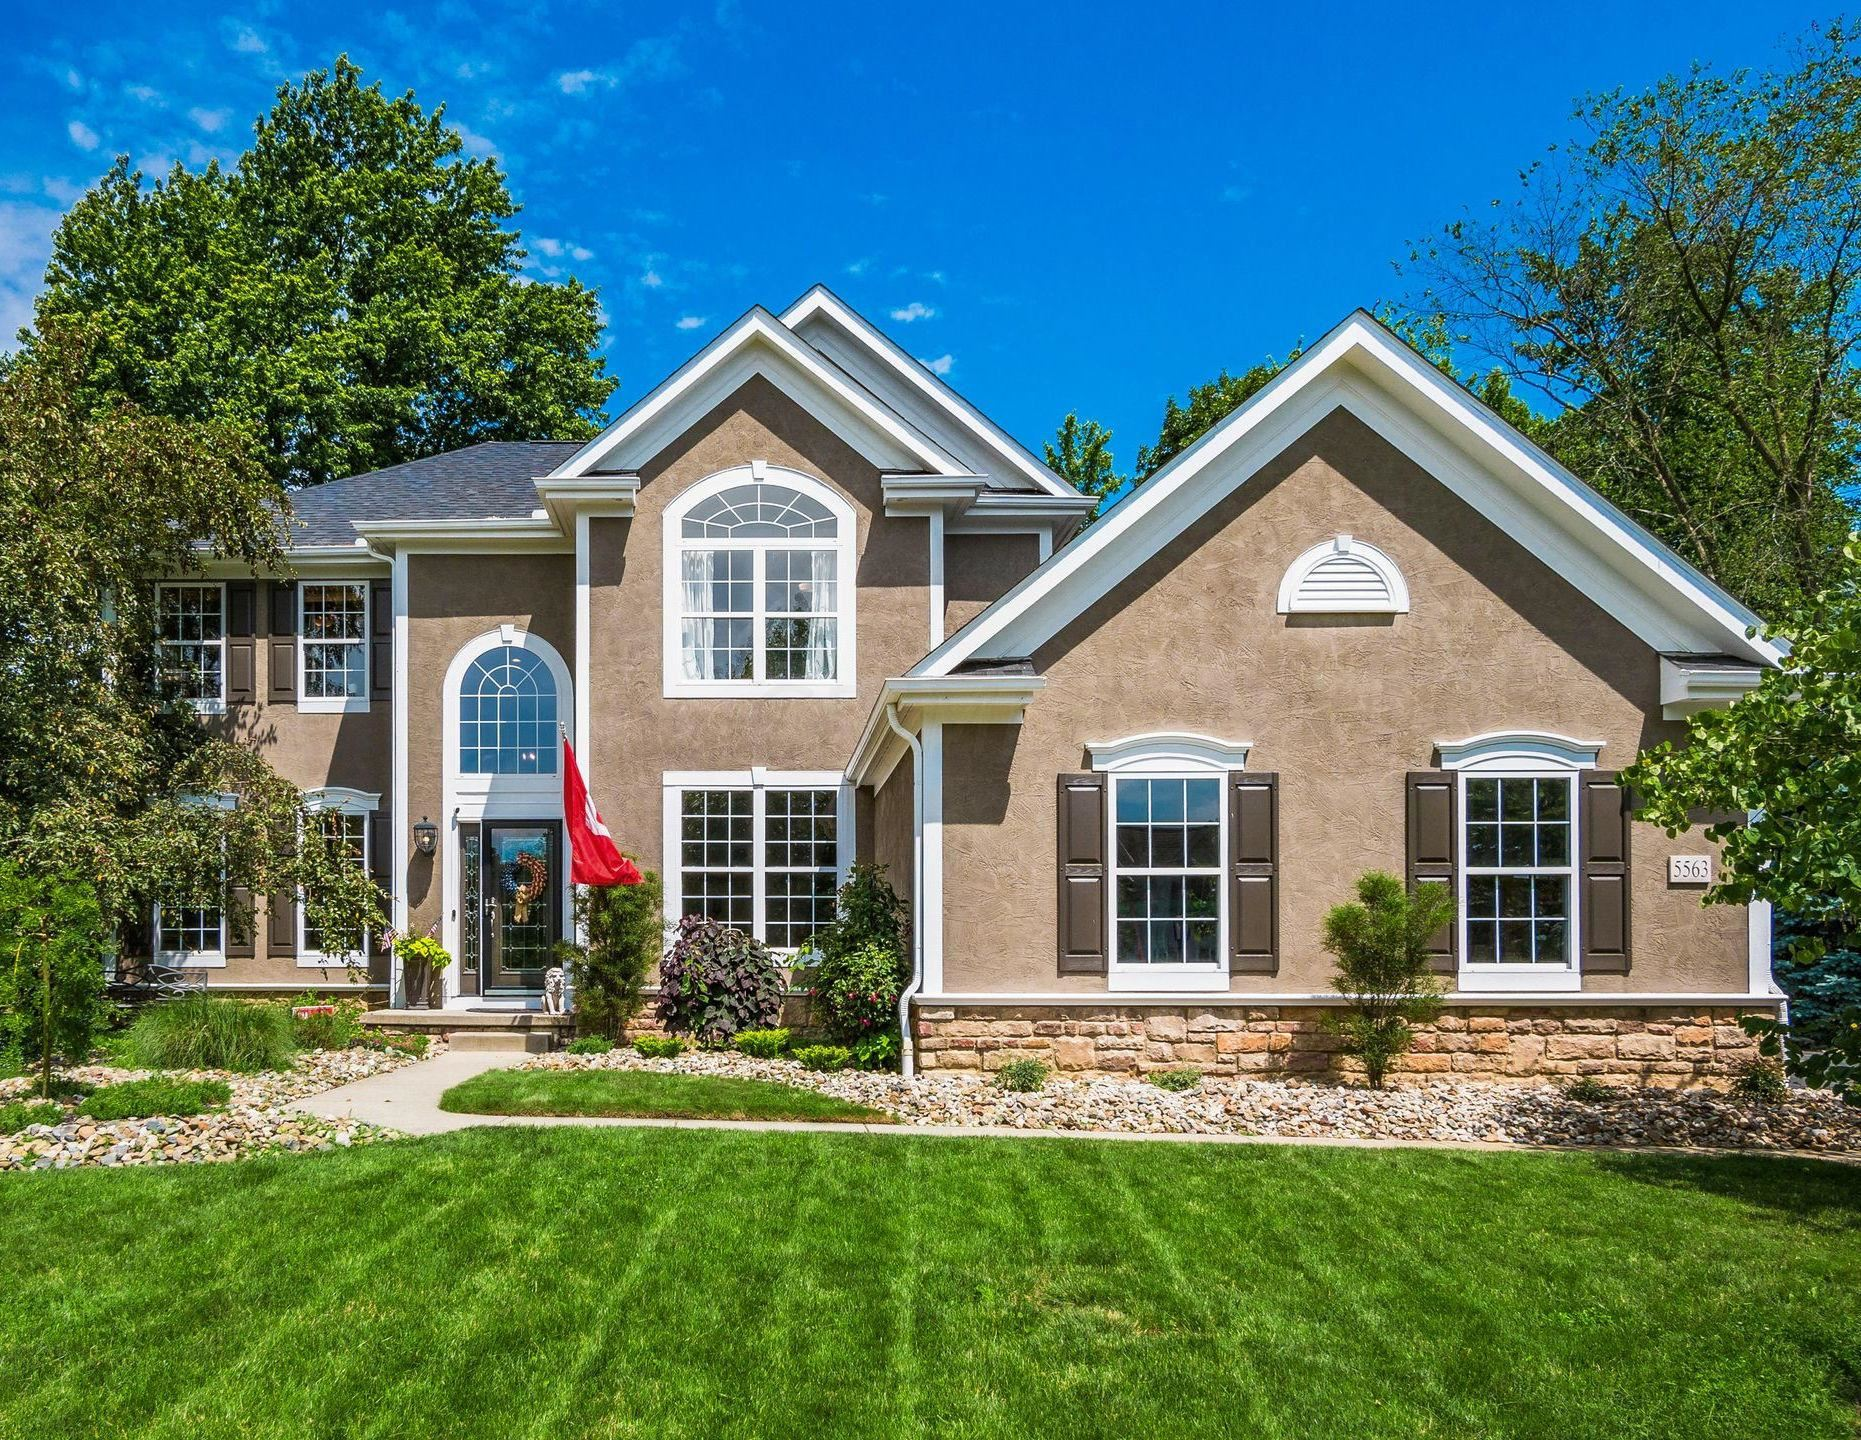 Photo of 5563 Pointewood Court, Galena, OH 43021 (MLS # 221023237)